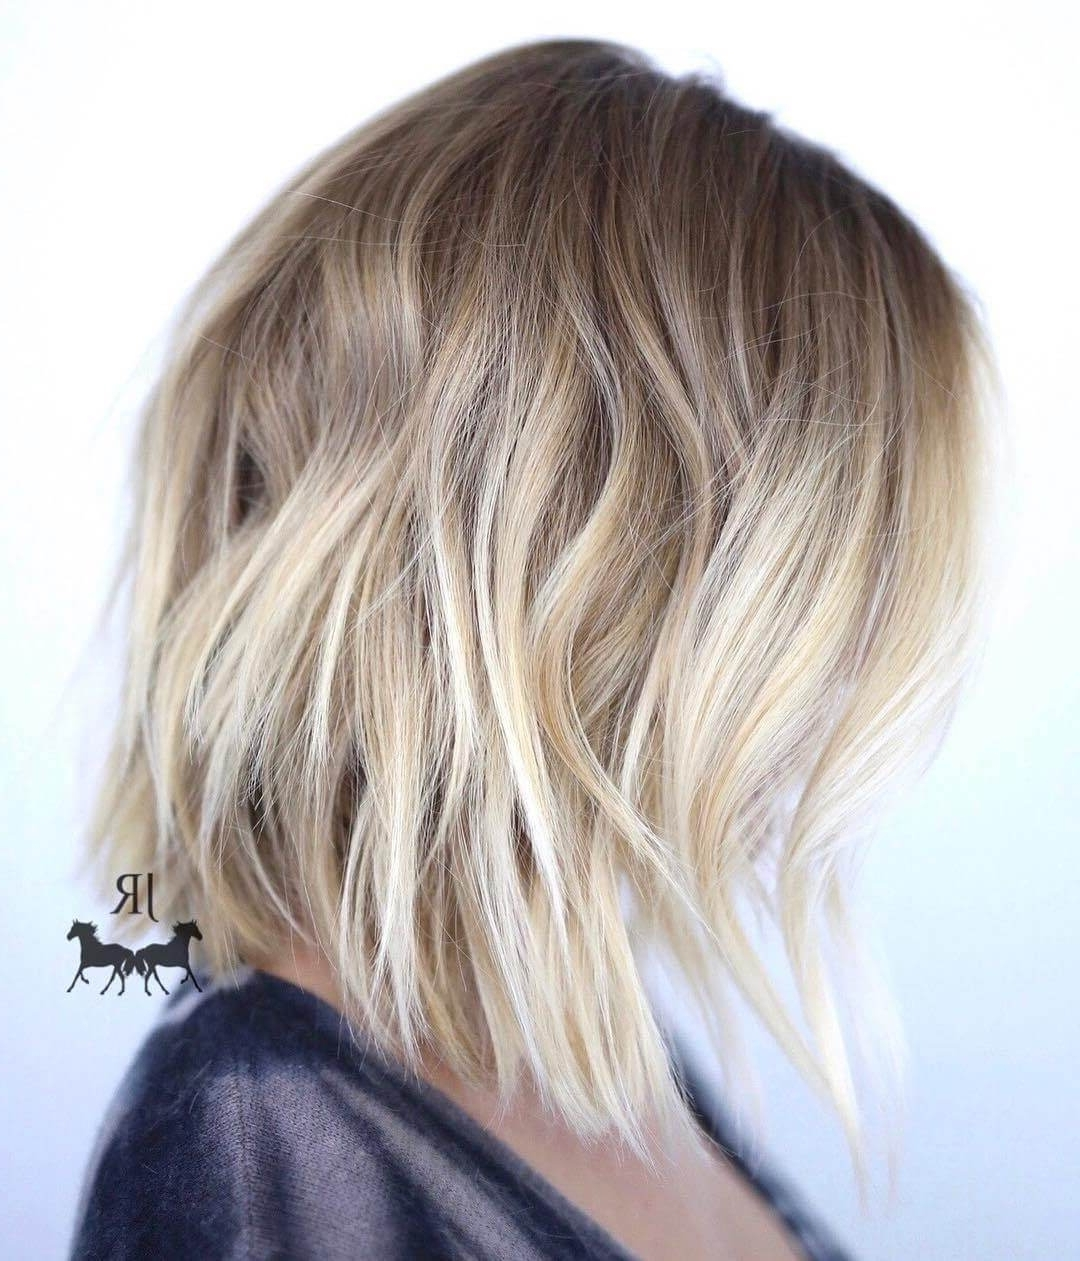 50 Fresh Short Blonde Hair Ideas To Update Your Style In 2018 With Regard To 2017 Dirty Blonde Bob Hairstyles (View 4 of 20)